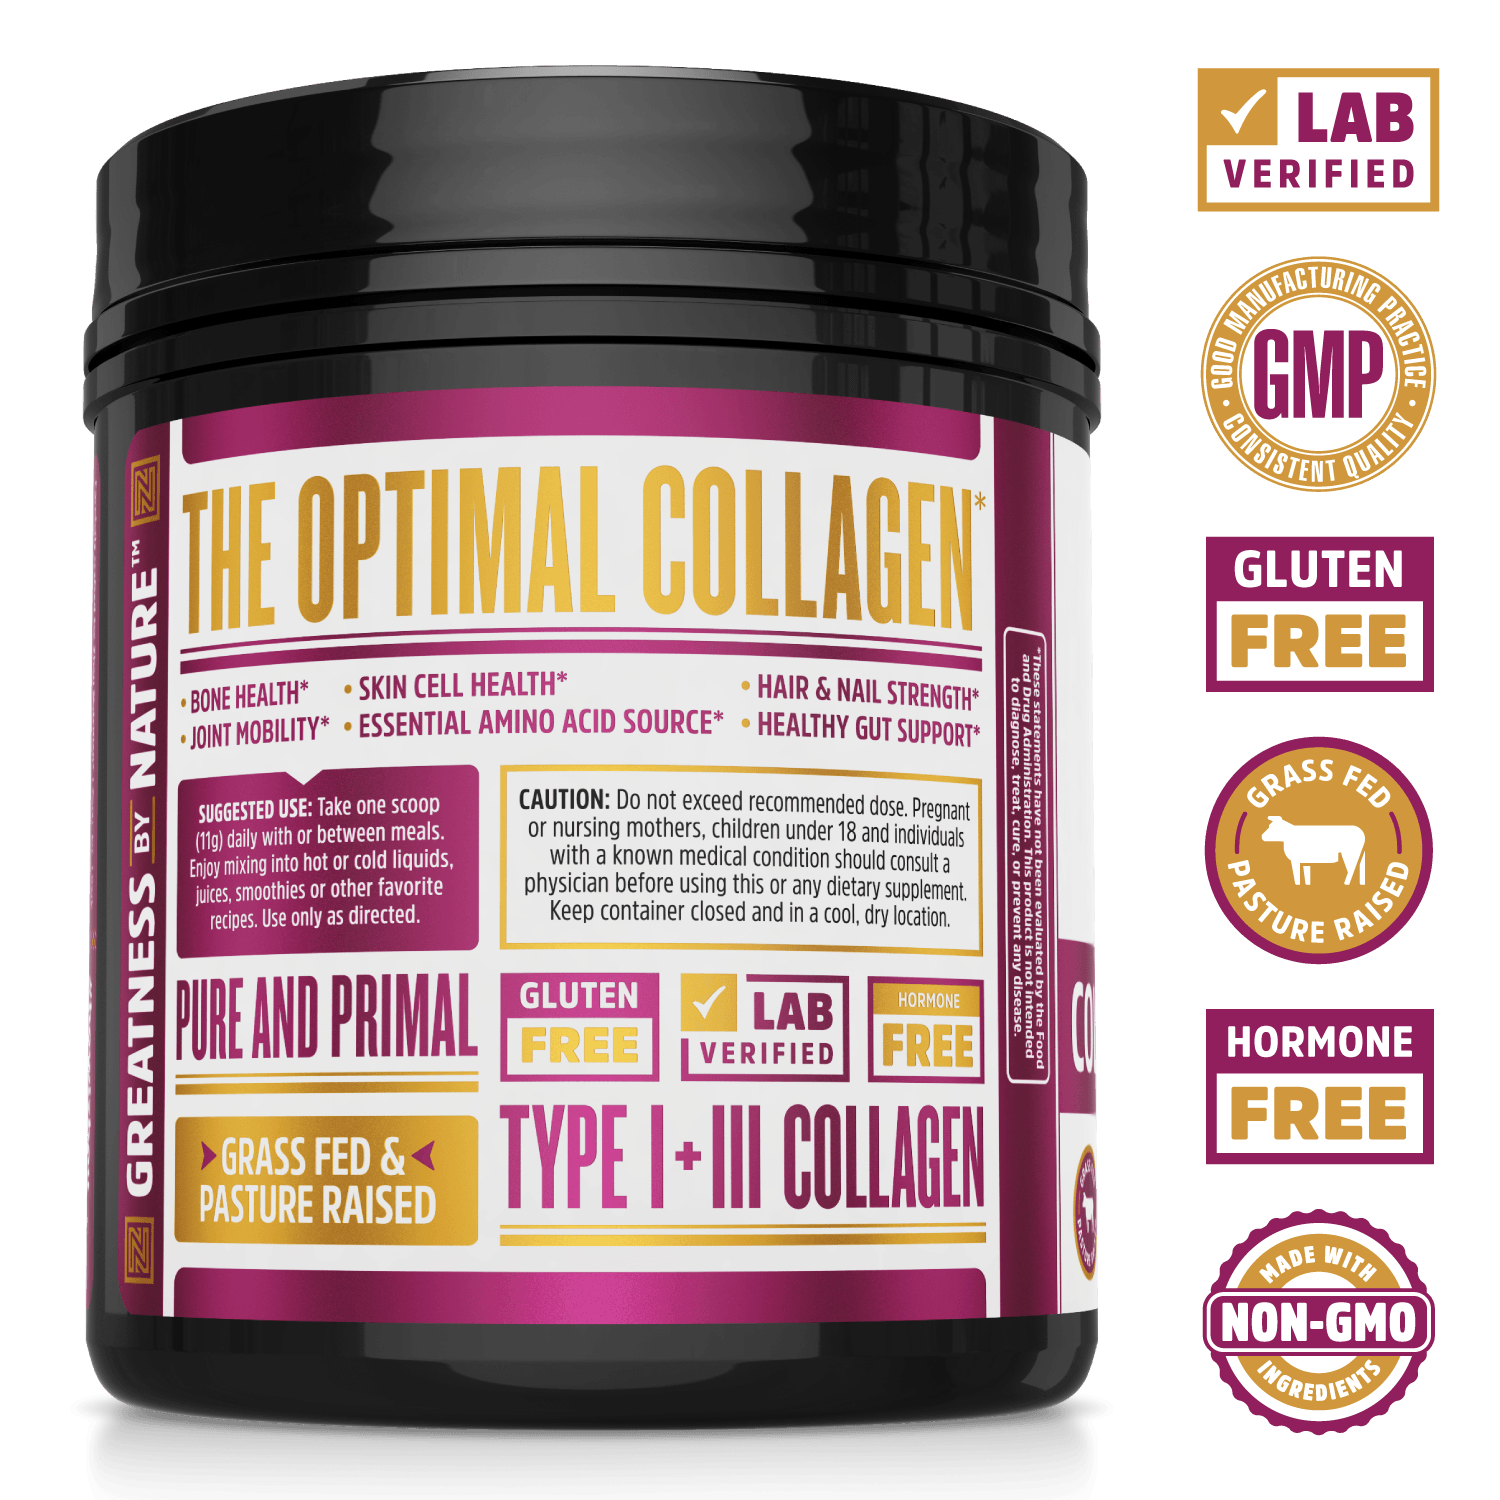 Collagen Peptides Pure Protein Power From Zhou Nutrition. Bottle side. Lab verified, good manufacturing practices, gluten free, grass fed pasture raised, hormone free.